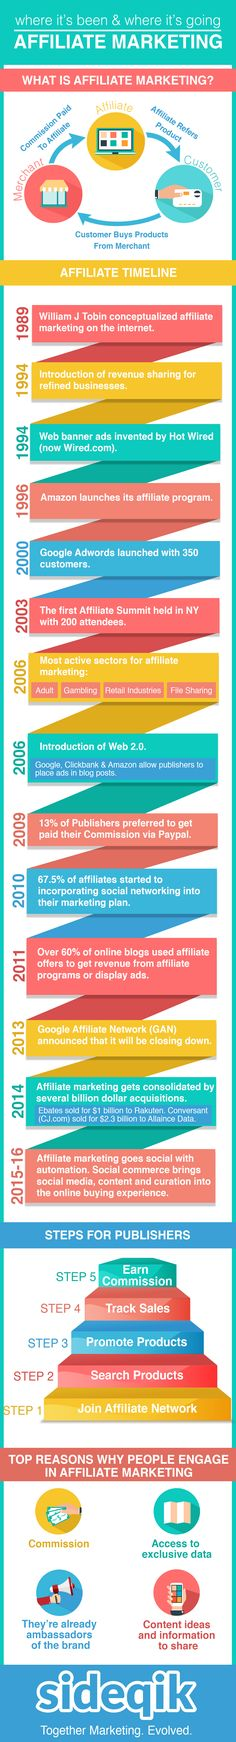 Affiliate marketing where it's been and where it's going (Infographic) - Get more e-commerce and digital marketing tips at Sideqik